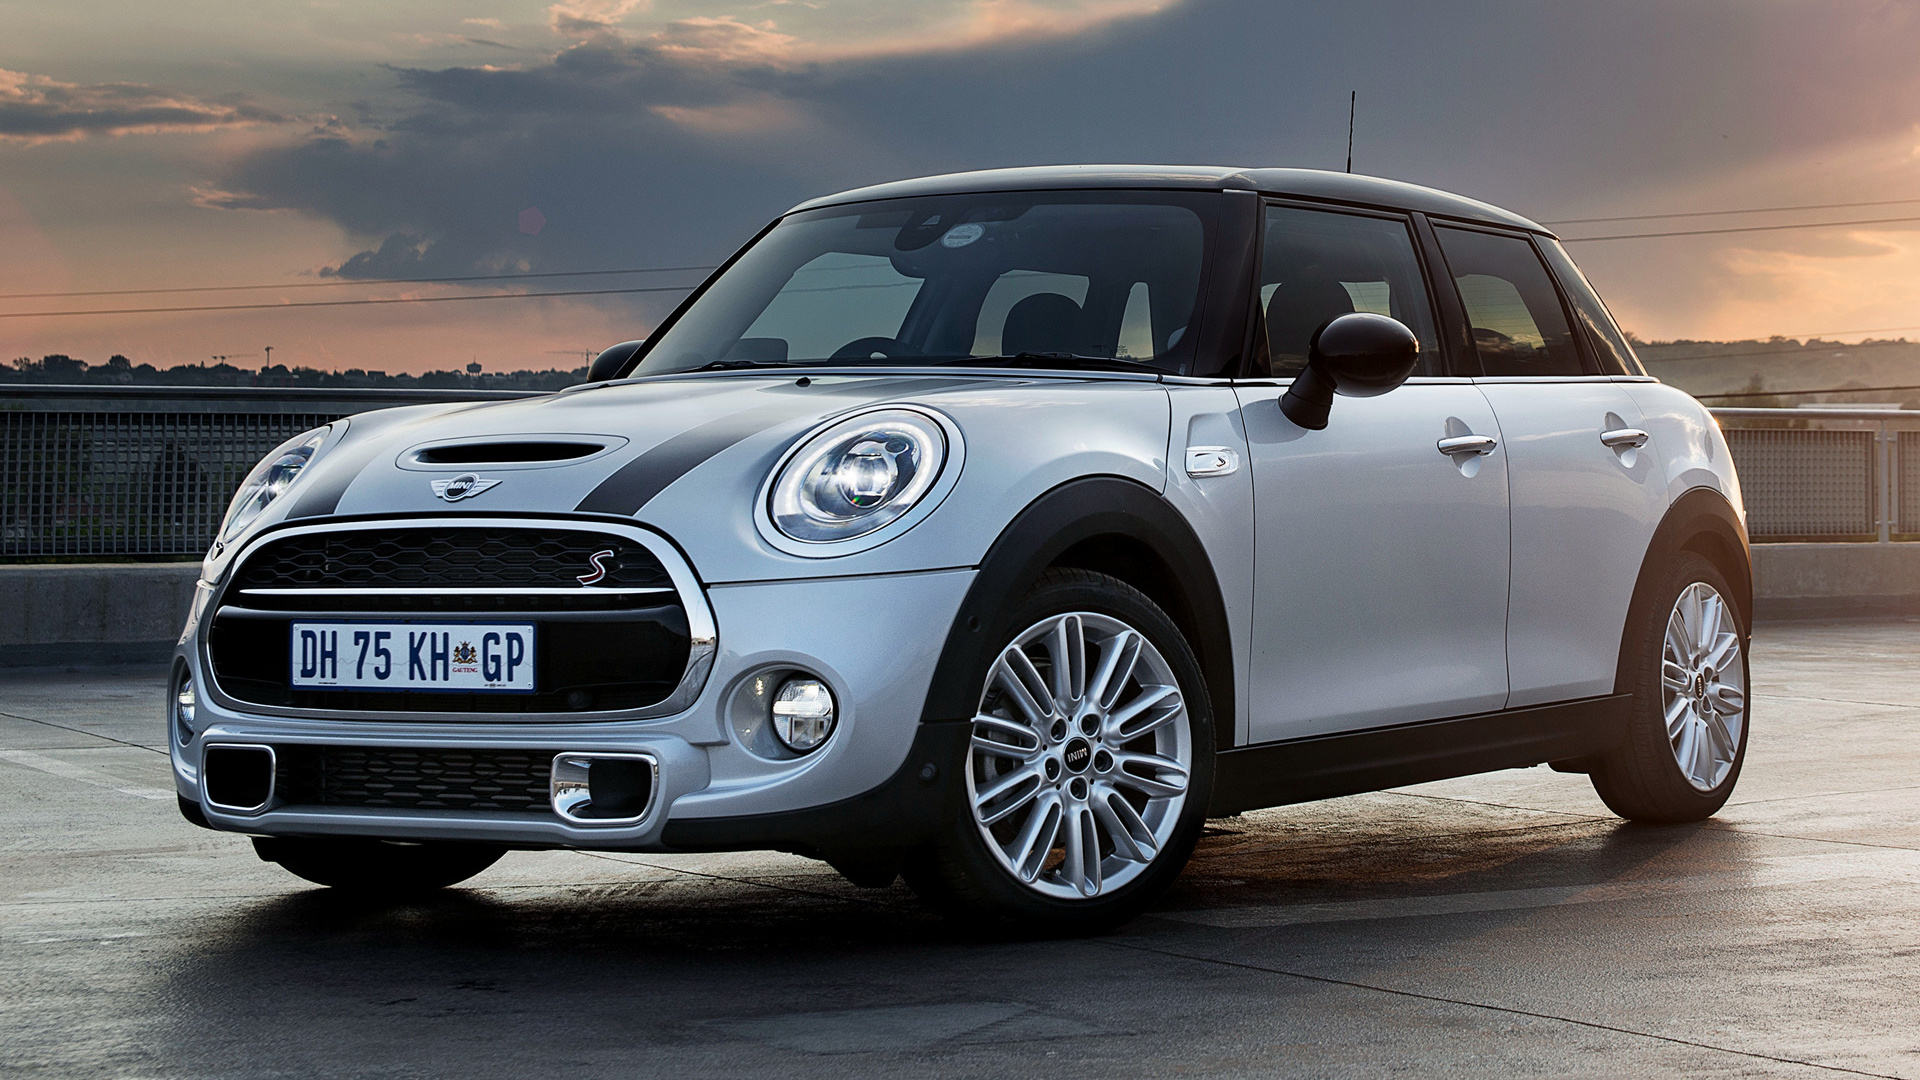 mini cooper five forces A modified design for the characteristic circular headlights make the hallmark front view of the new mini 3-door, the new mini 5-door and the new mini cooper s 5.